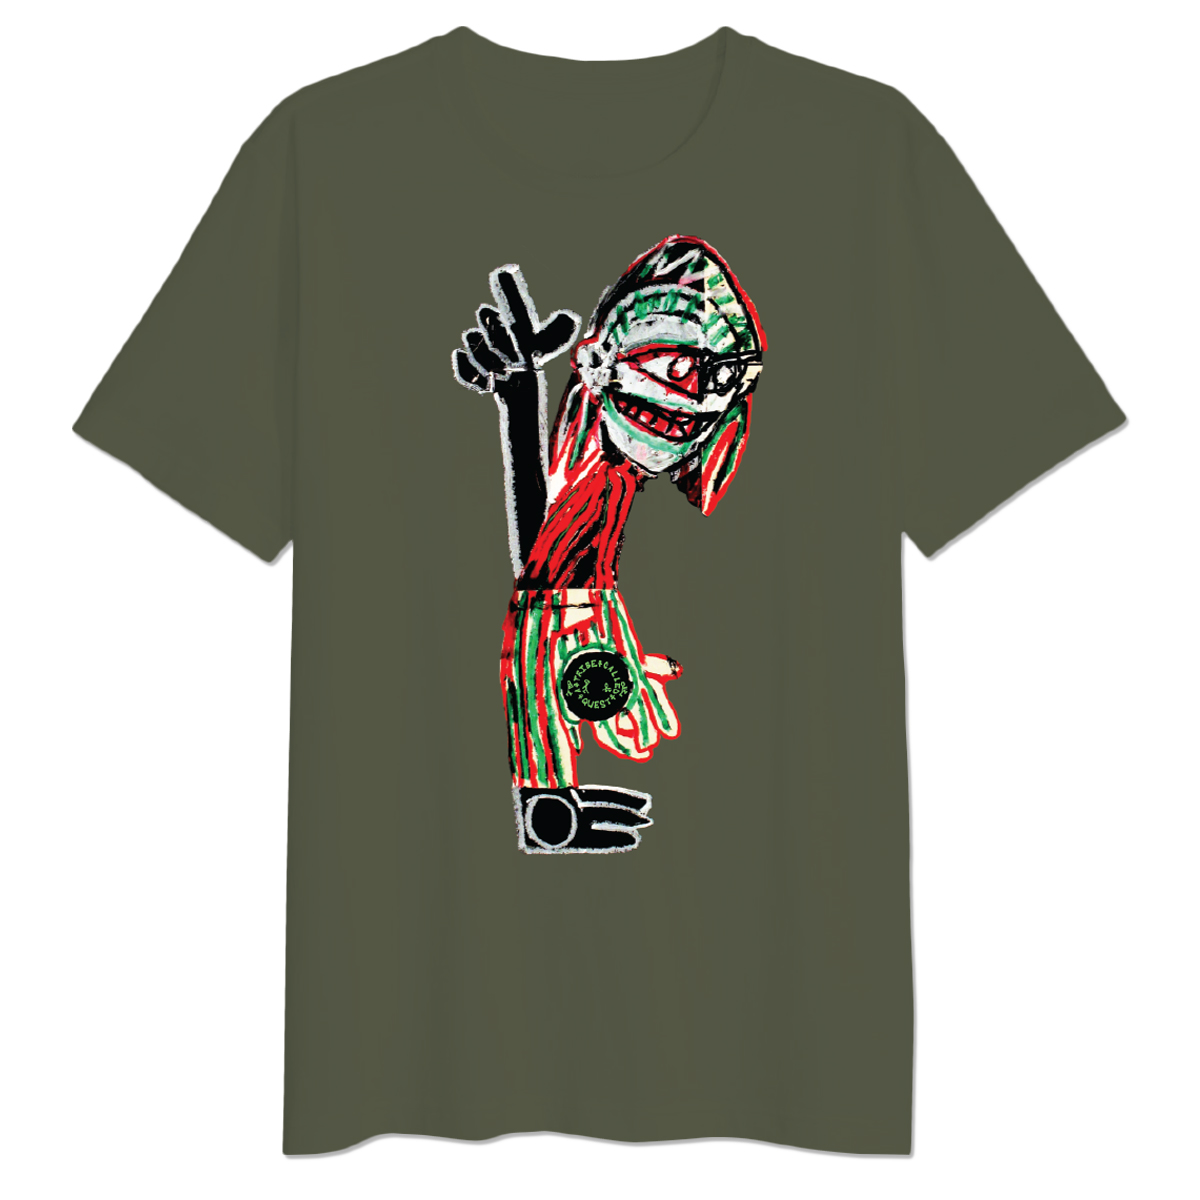 A Tribe Called Quest Character T-shirt